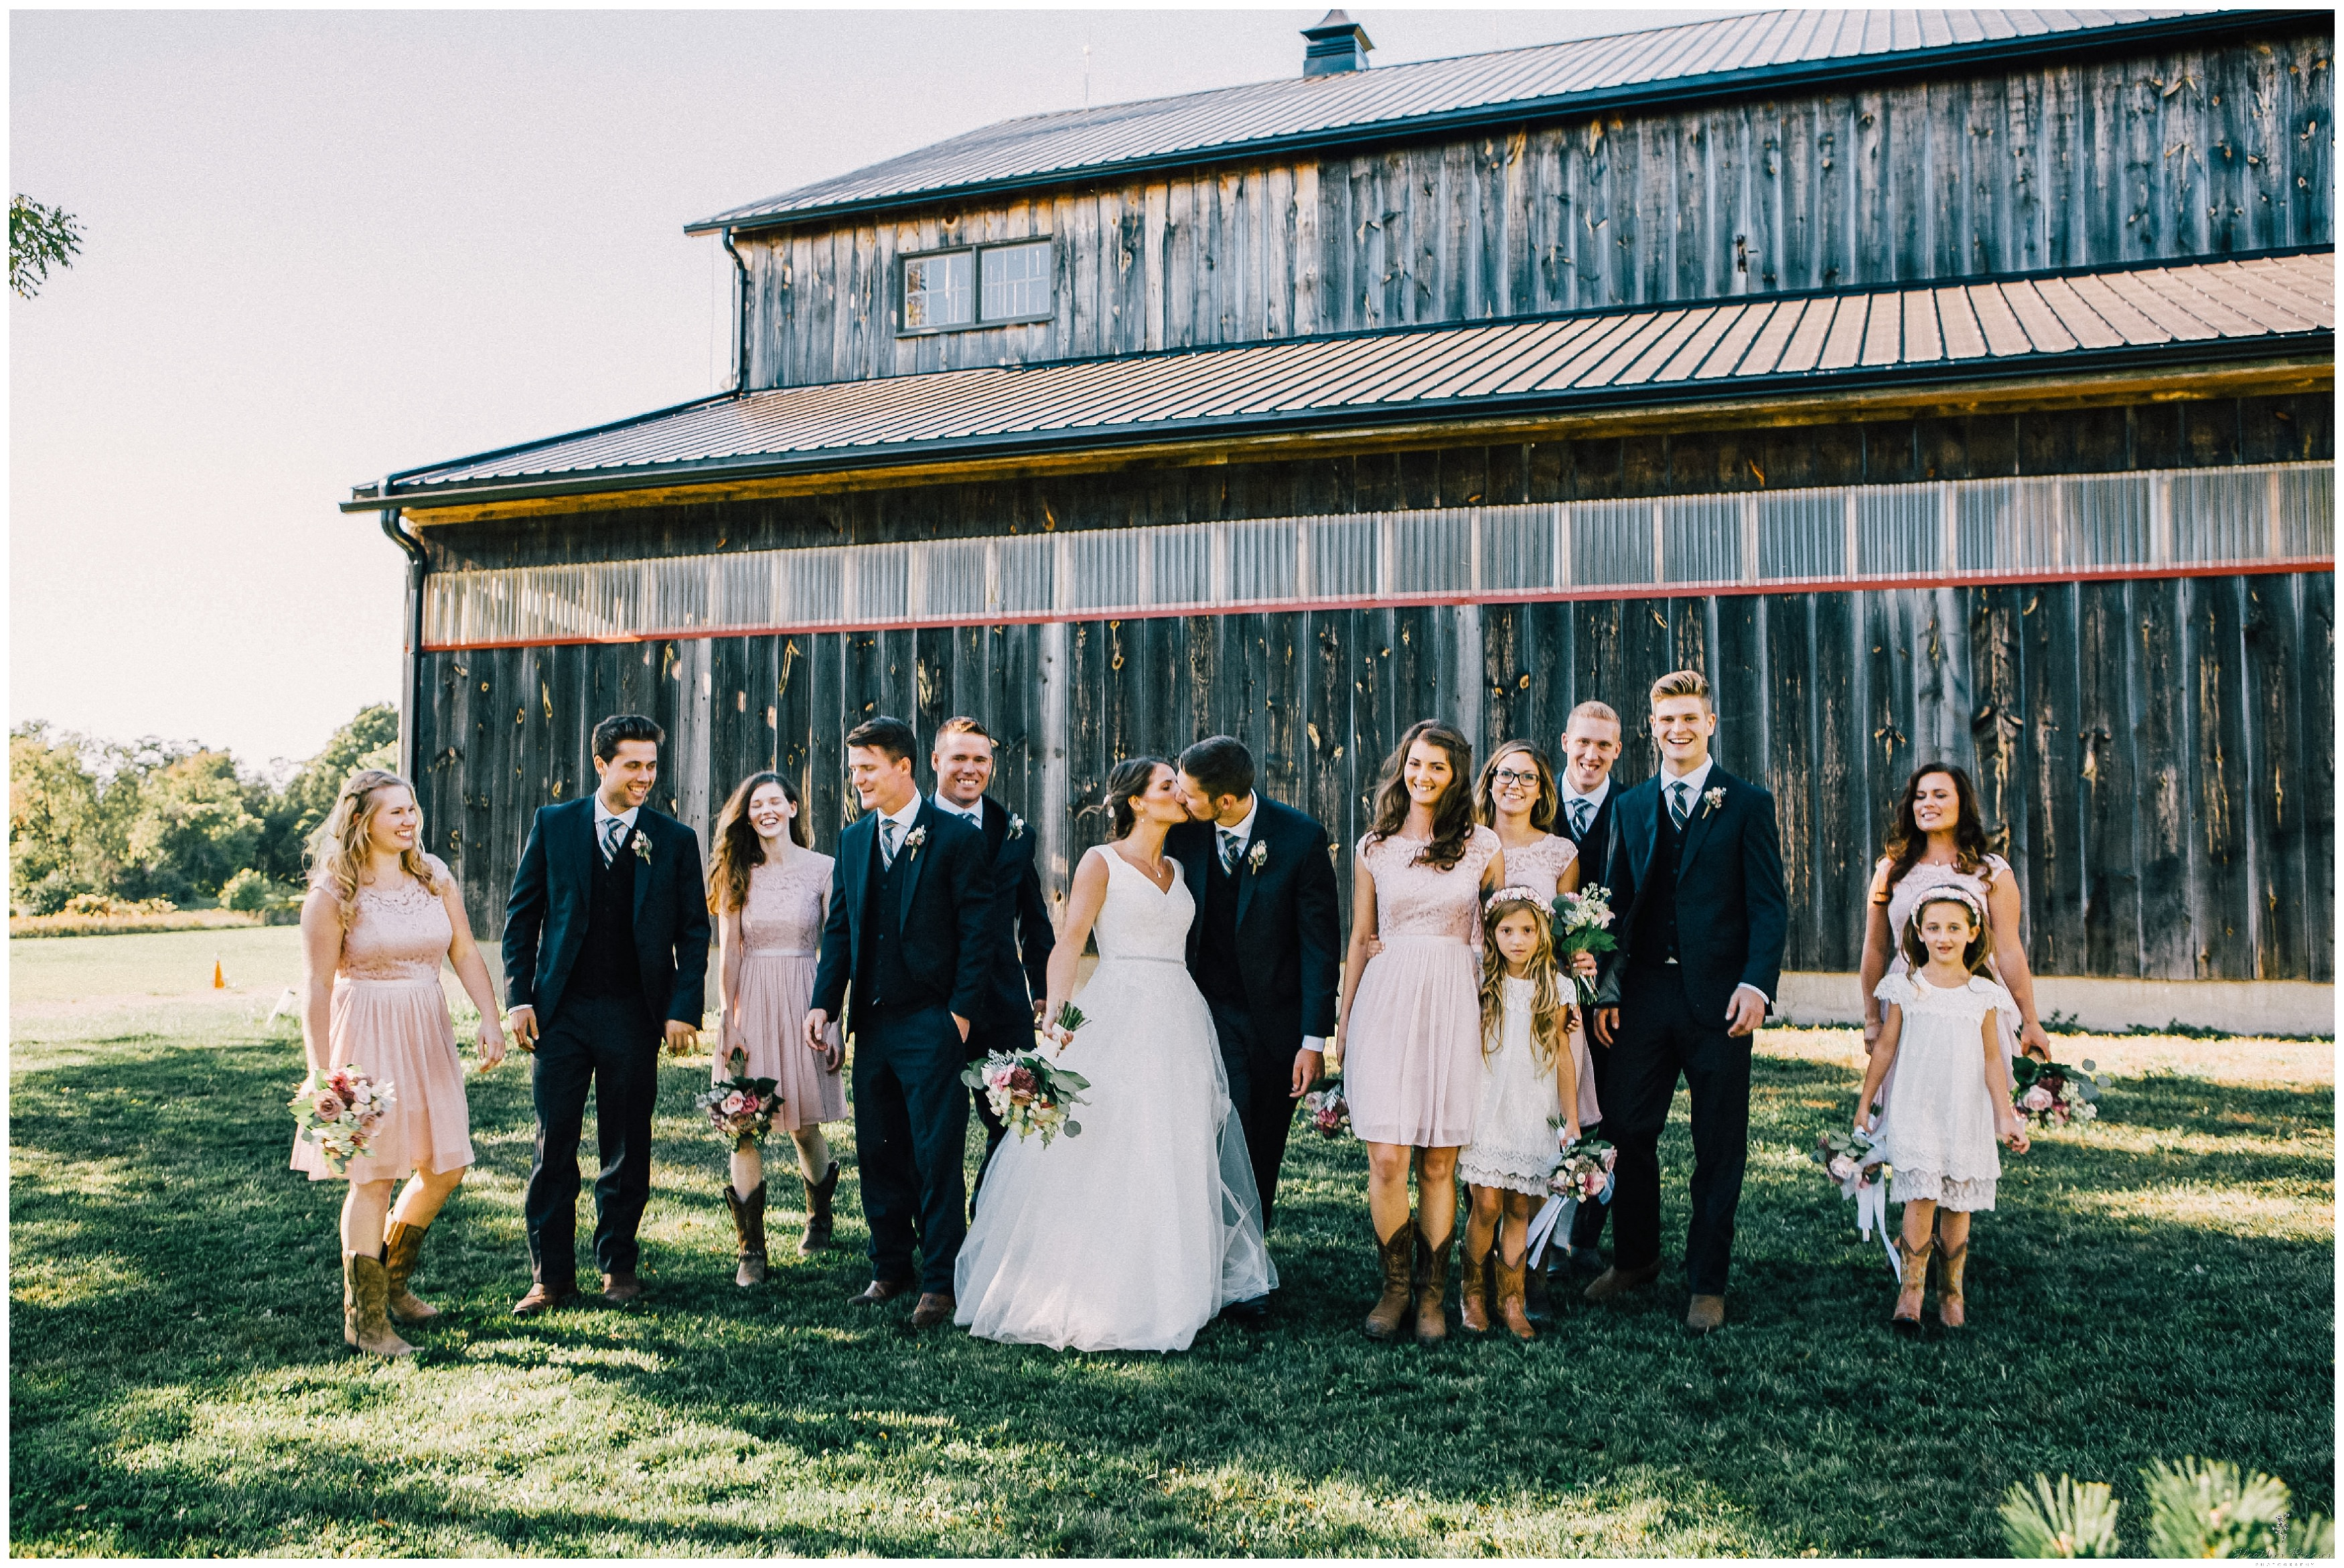 Ontario Barn Wedding_2191.jpg